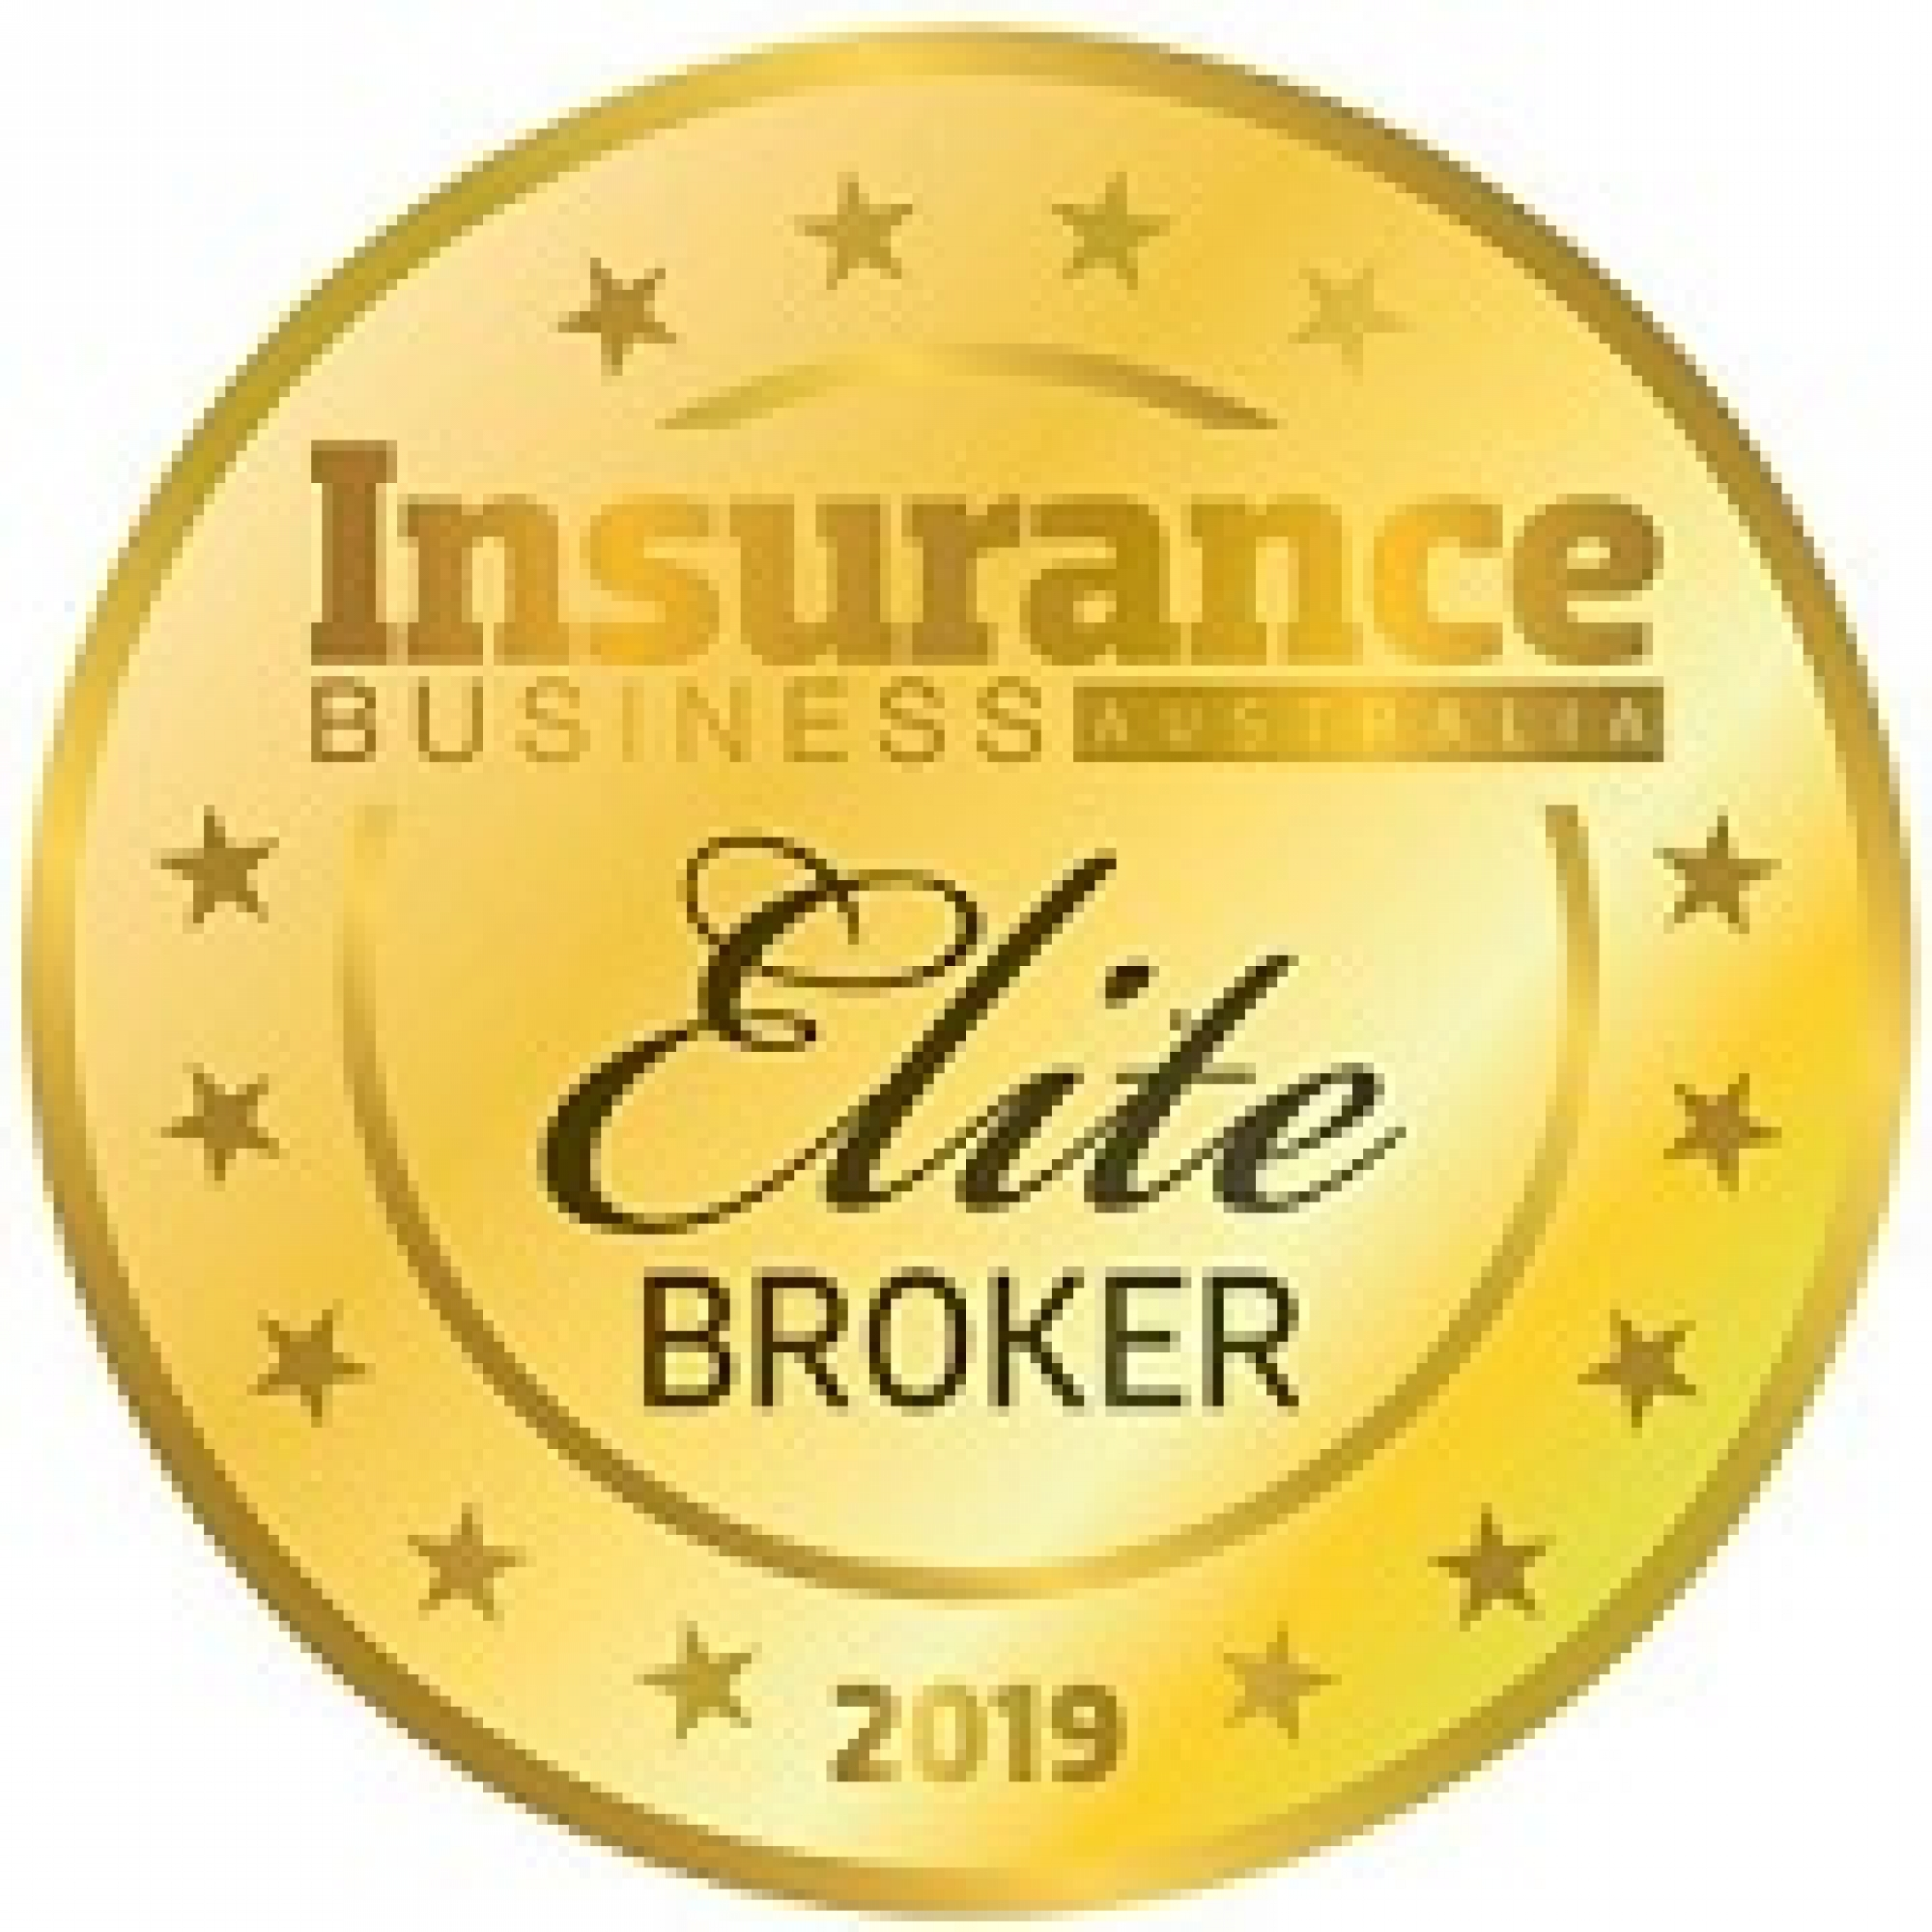 2019 Insurance Business Australia Elite Broker